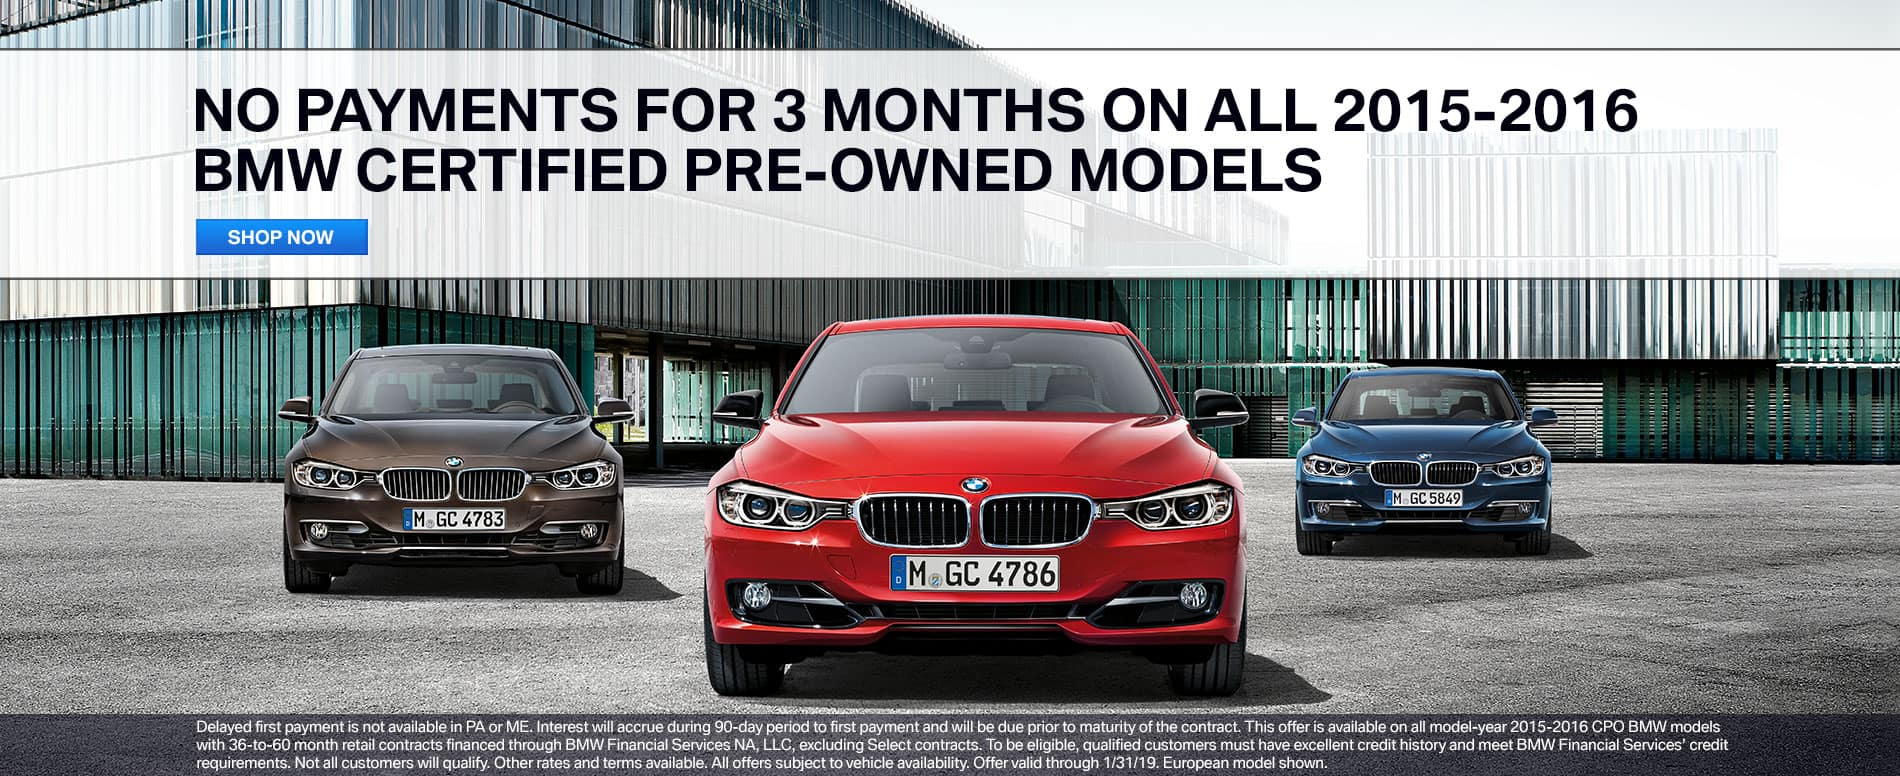 Make No Payments for 3 Months on 2015-2016 BMW CPO Models